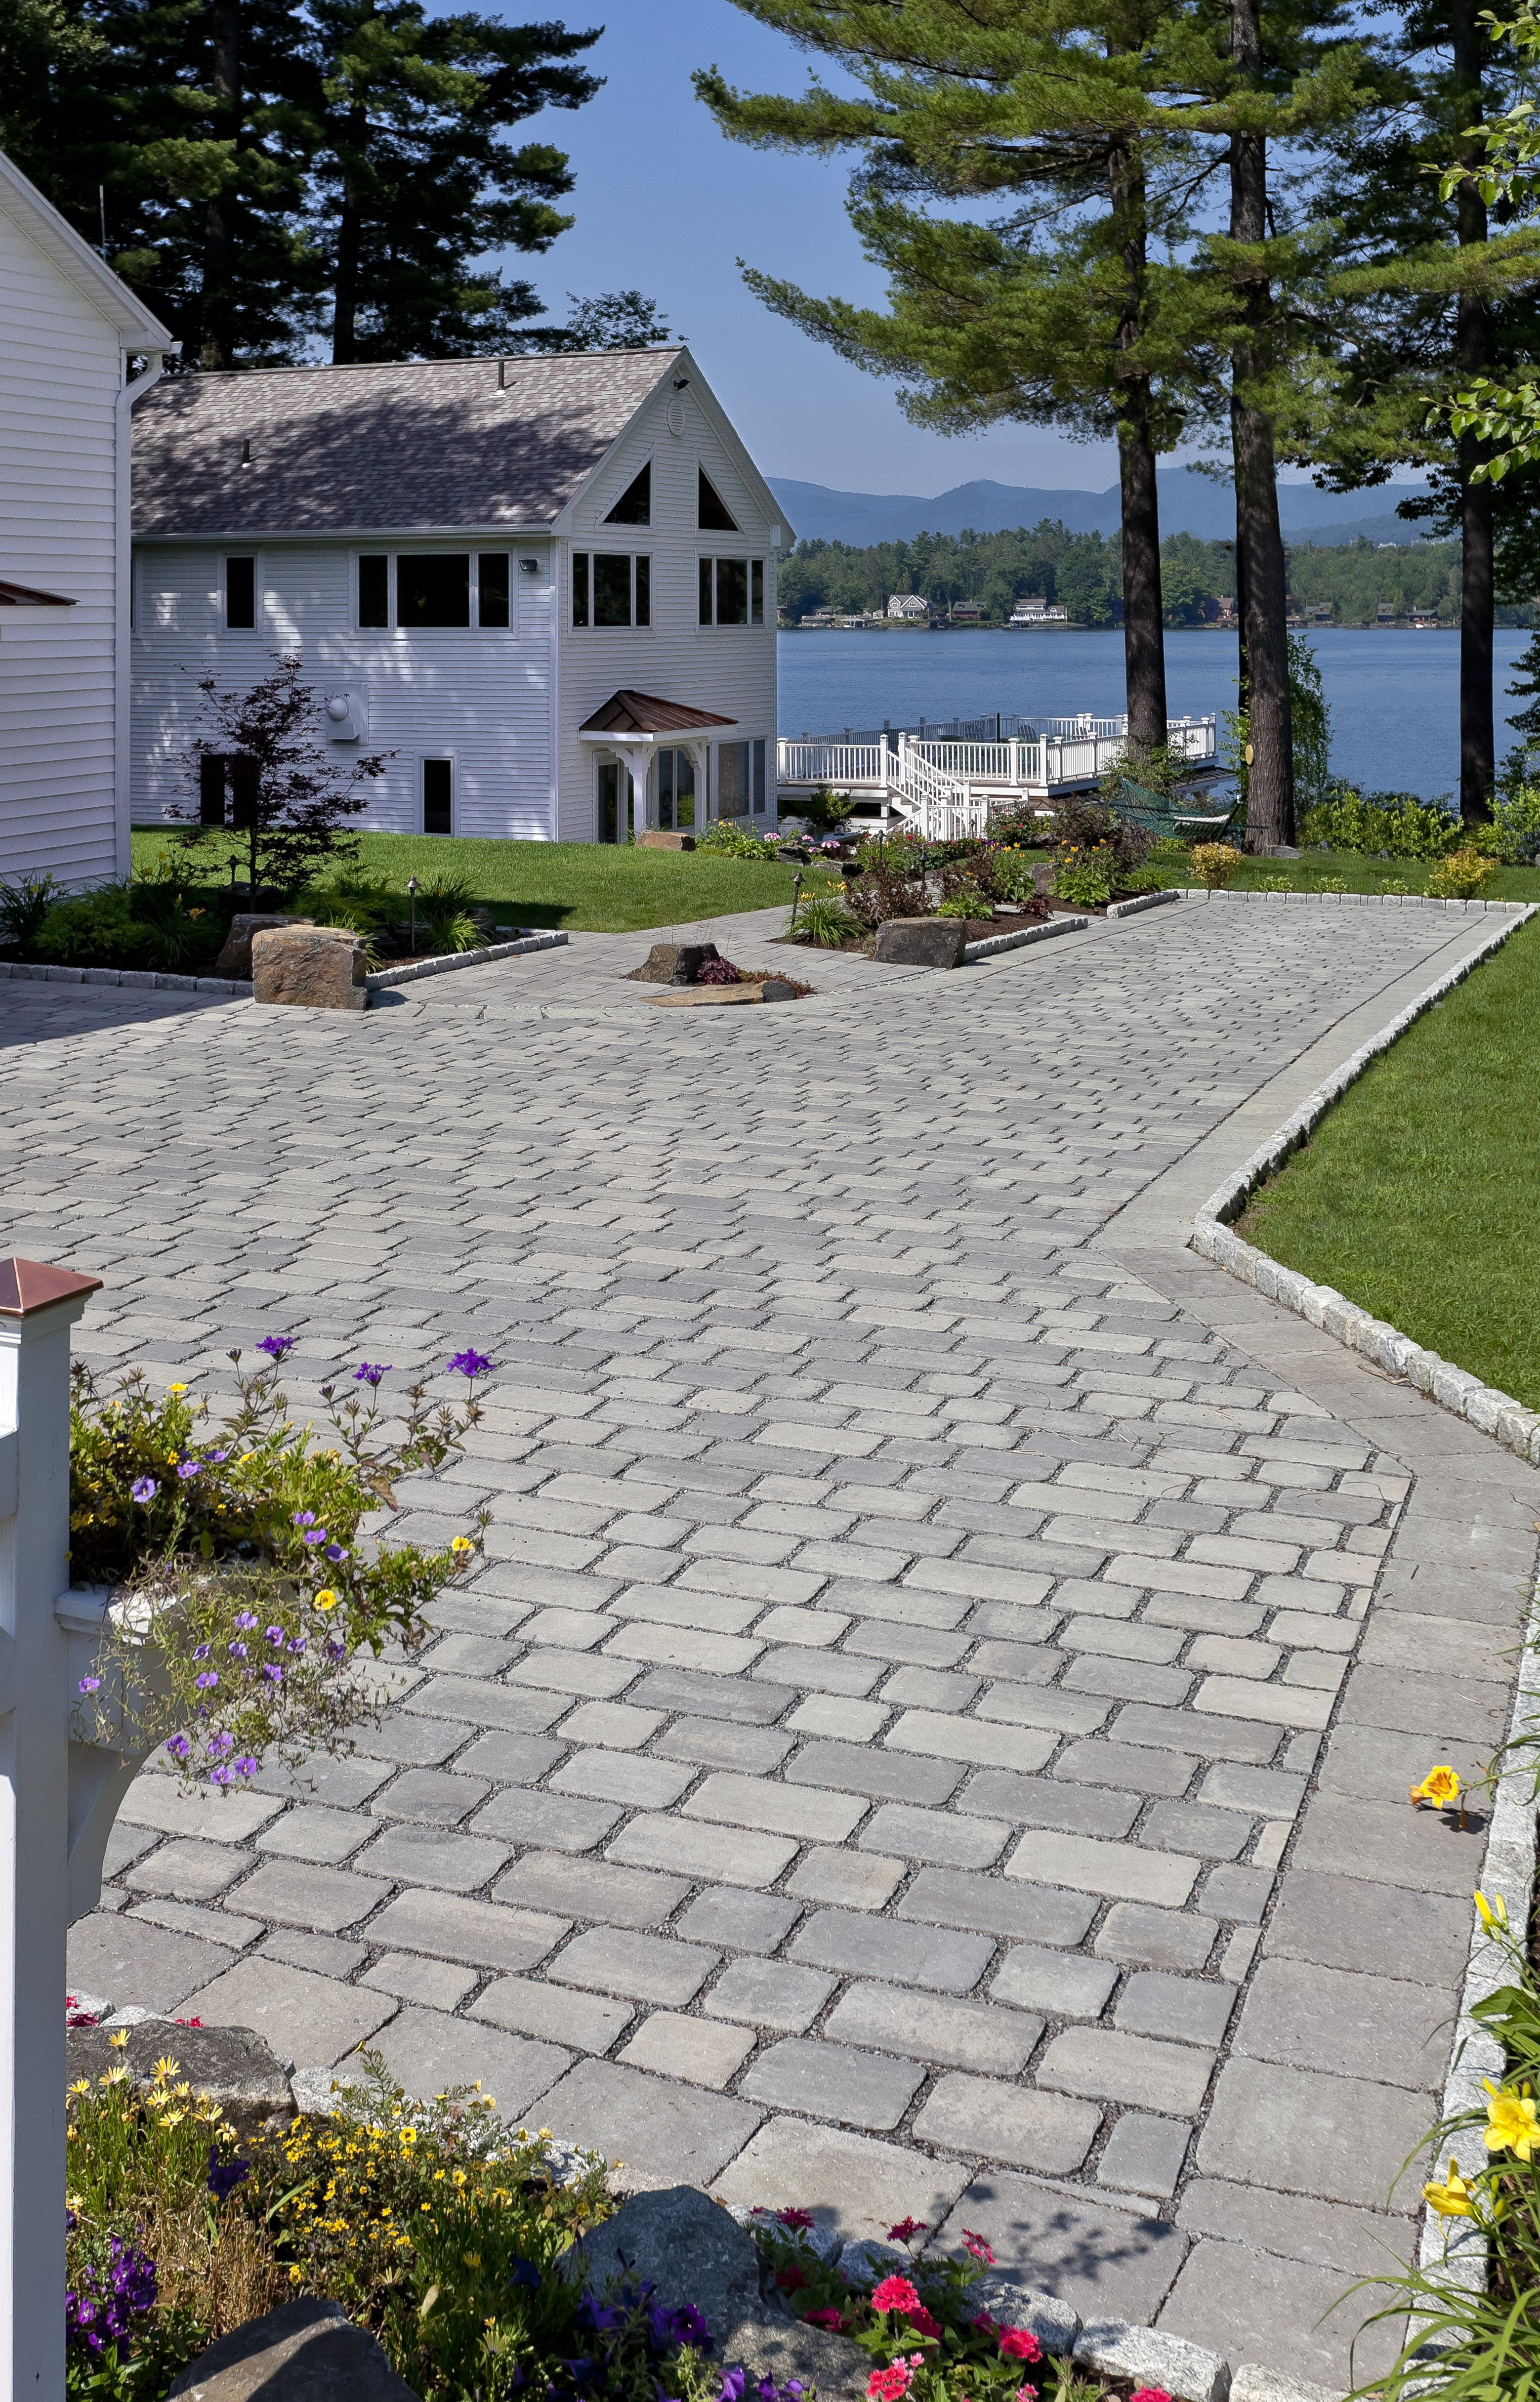 Driveway Landscaping Outdoor Water Features Driveway Design Driveway Landscaping